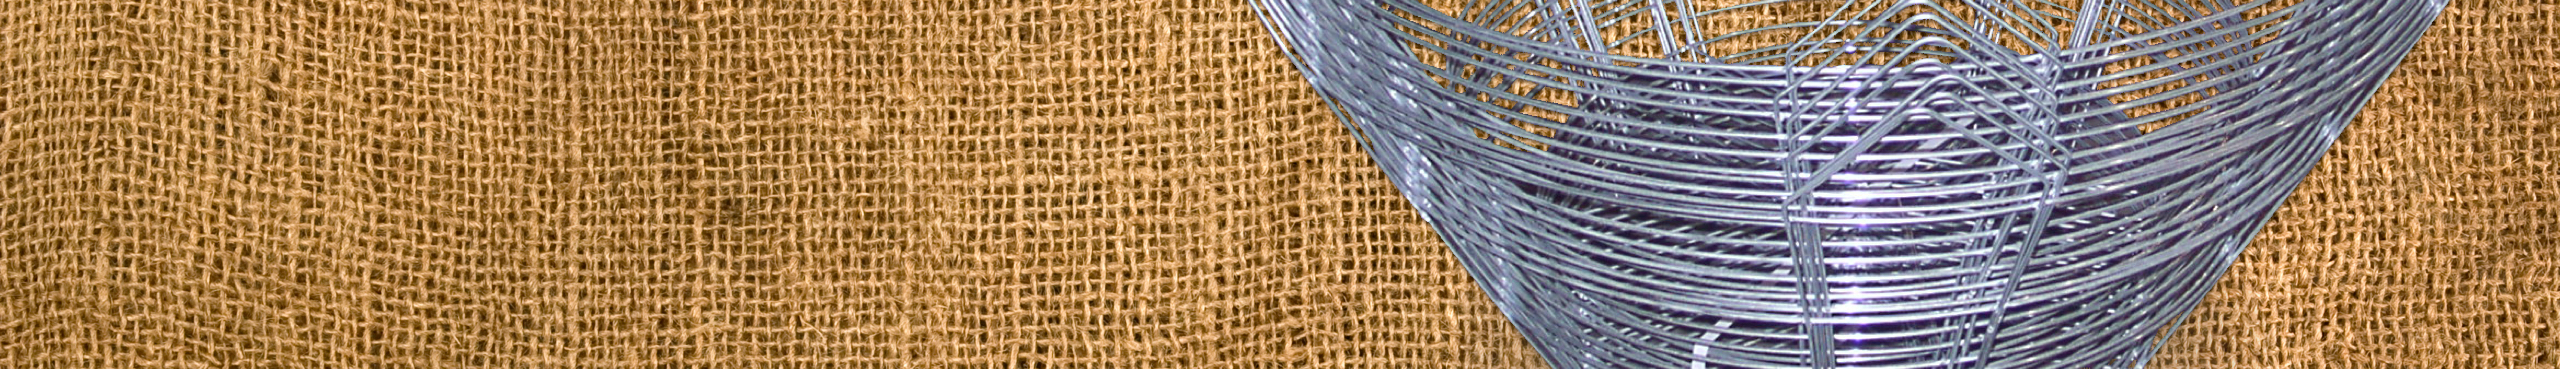 Burlap with Wire Basket